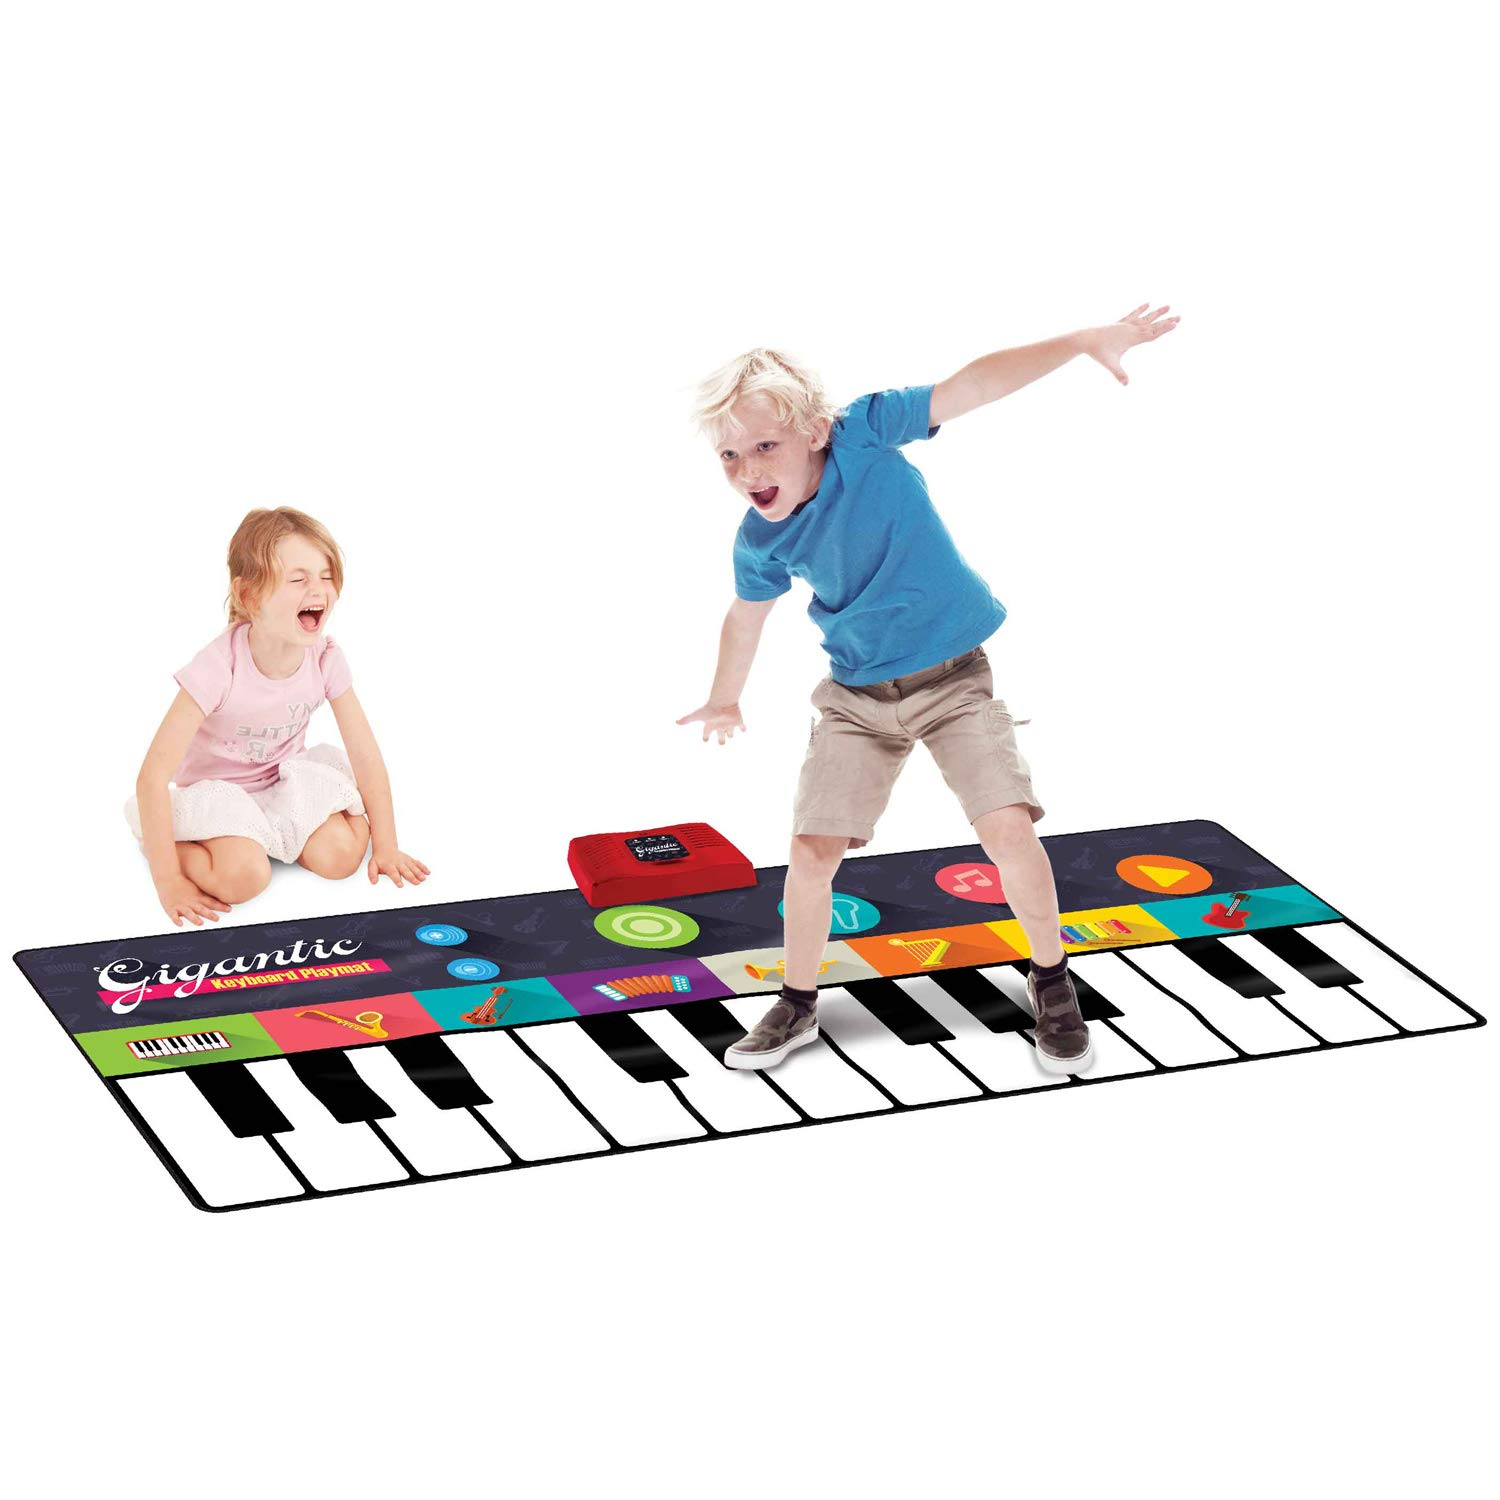 Giant Piano Keyboard Playmats Kids Fun Musical Foot Mat for Party Dance Games